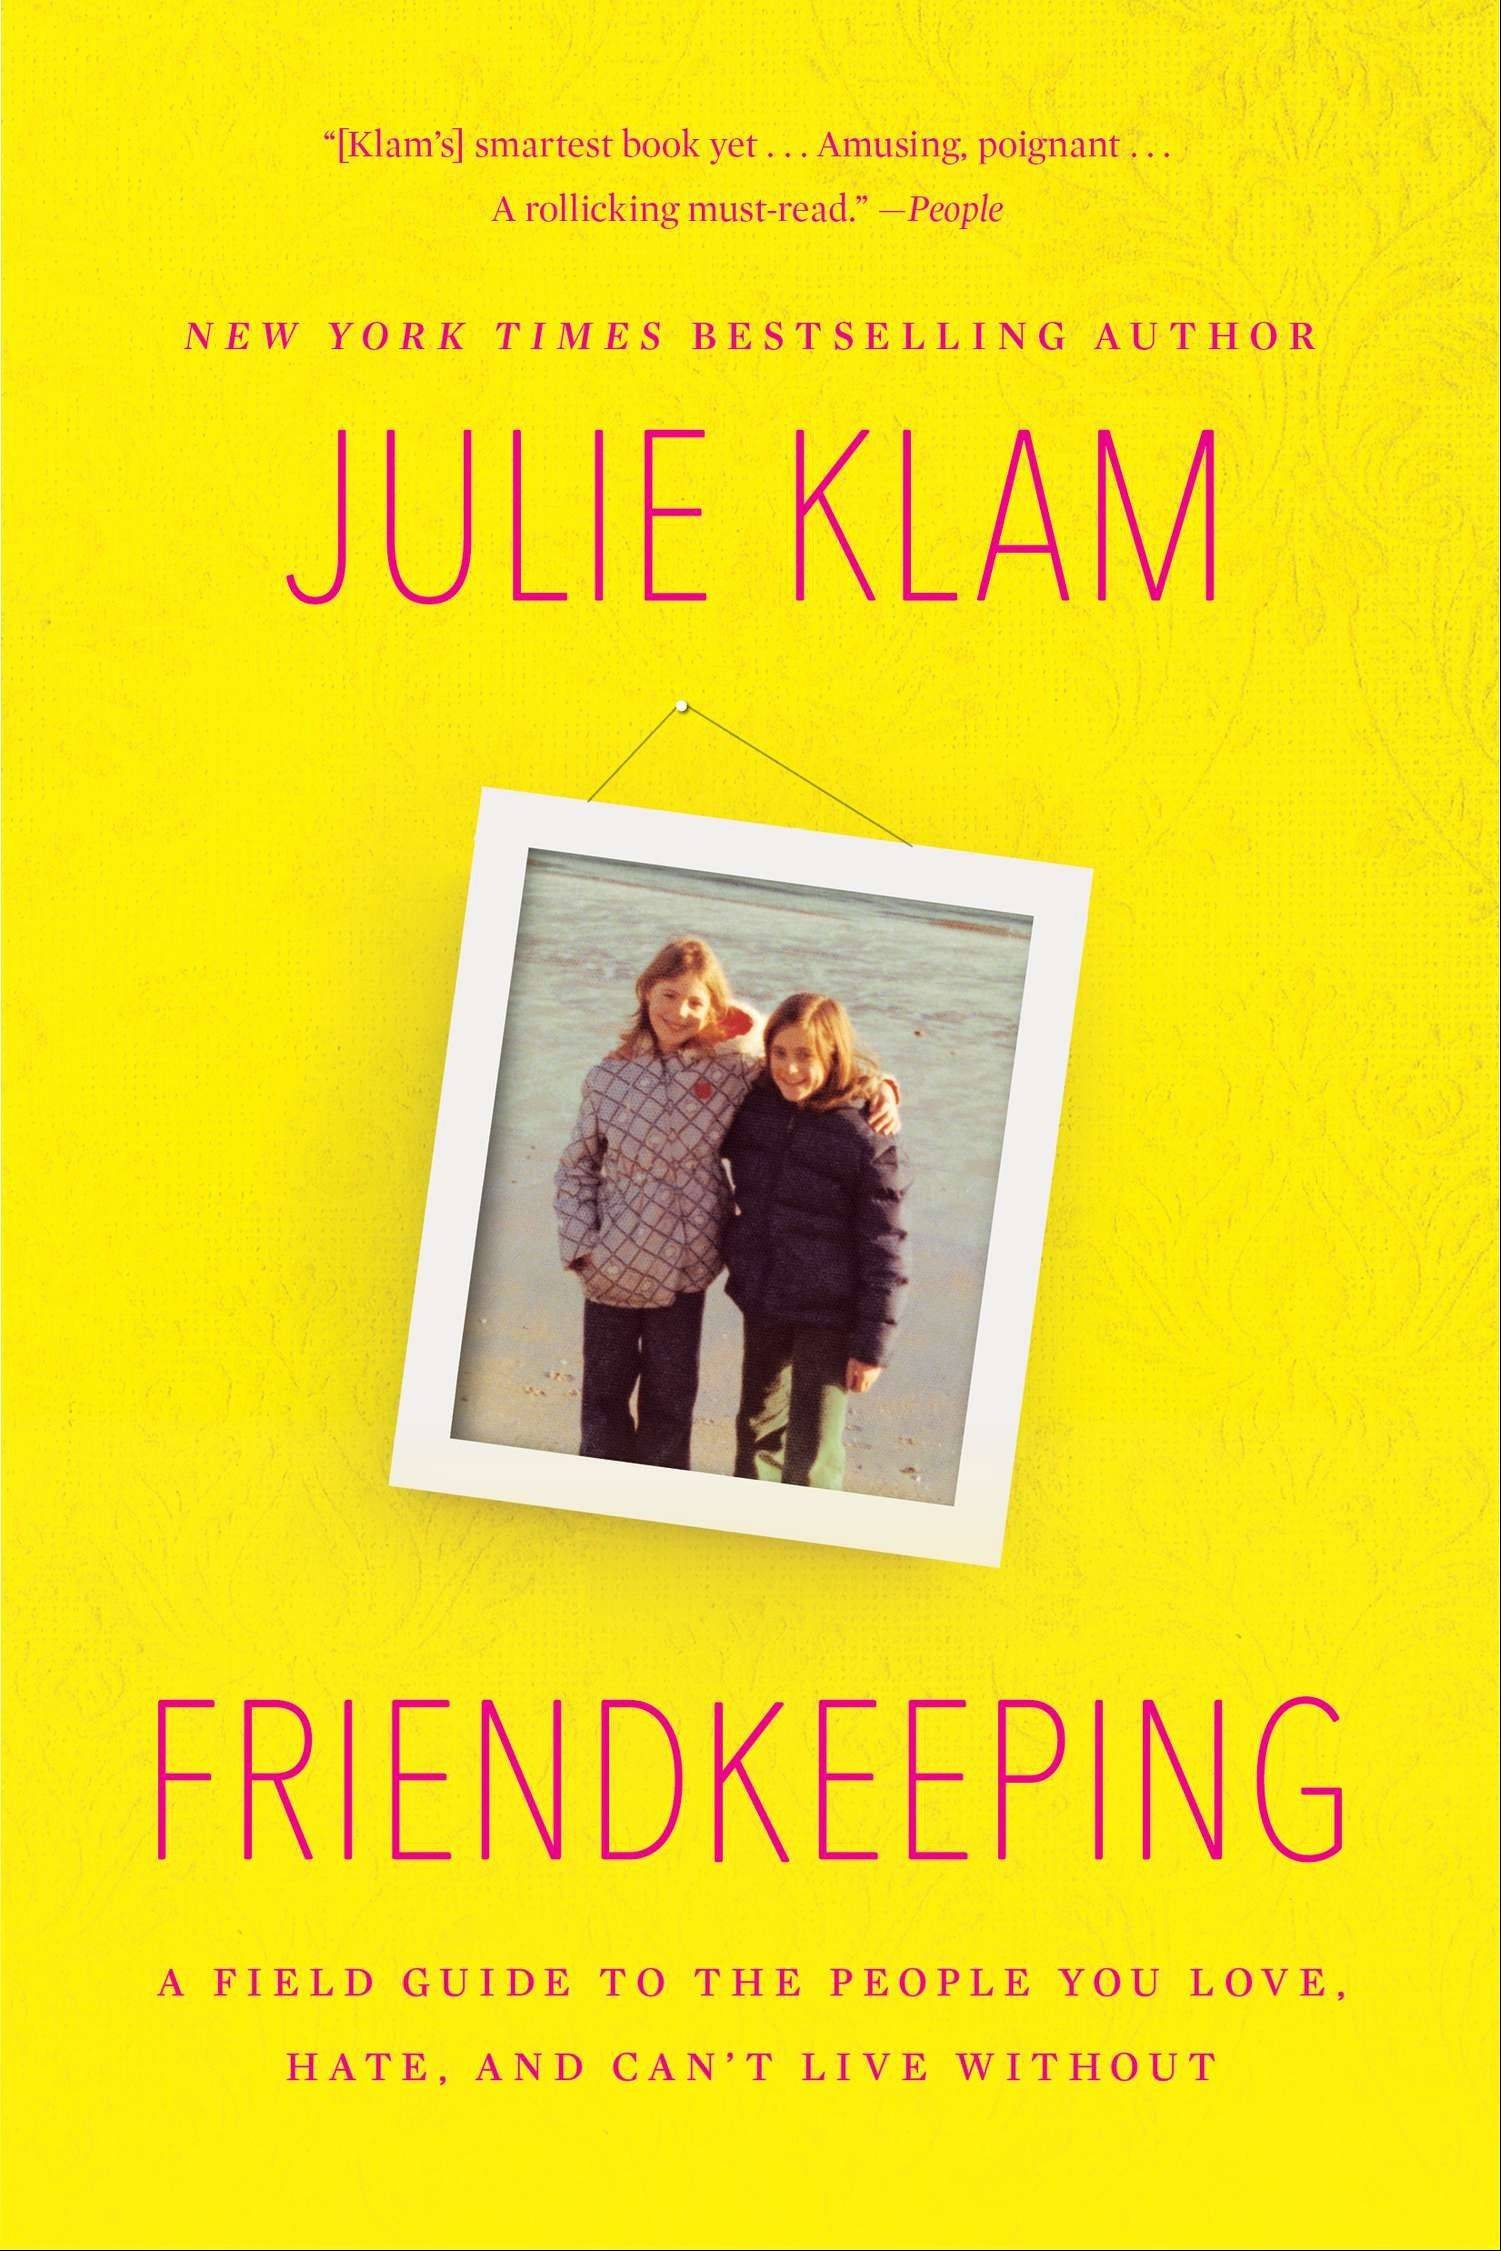 �Friendkeeping: A Field Guide to the People You Love, Hate, and Can�t Live Without,� by Julie Klam, believes middle ground is possible.